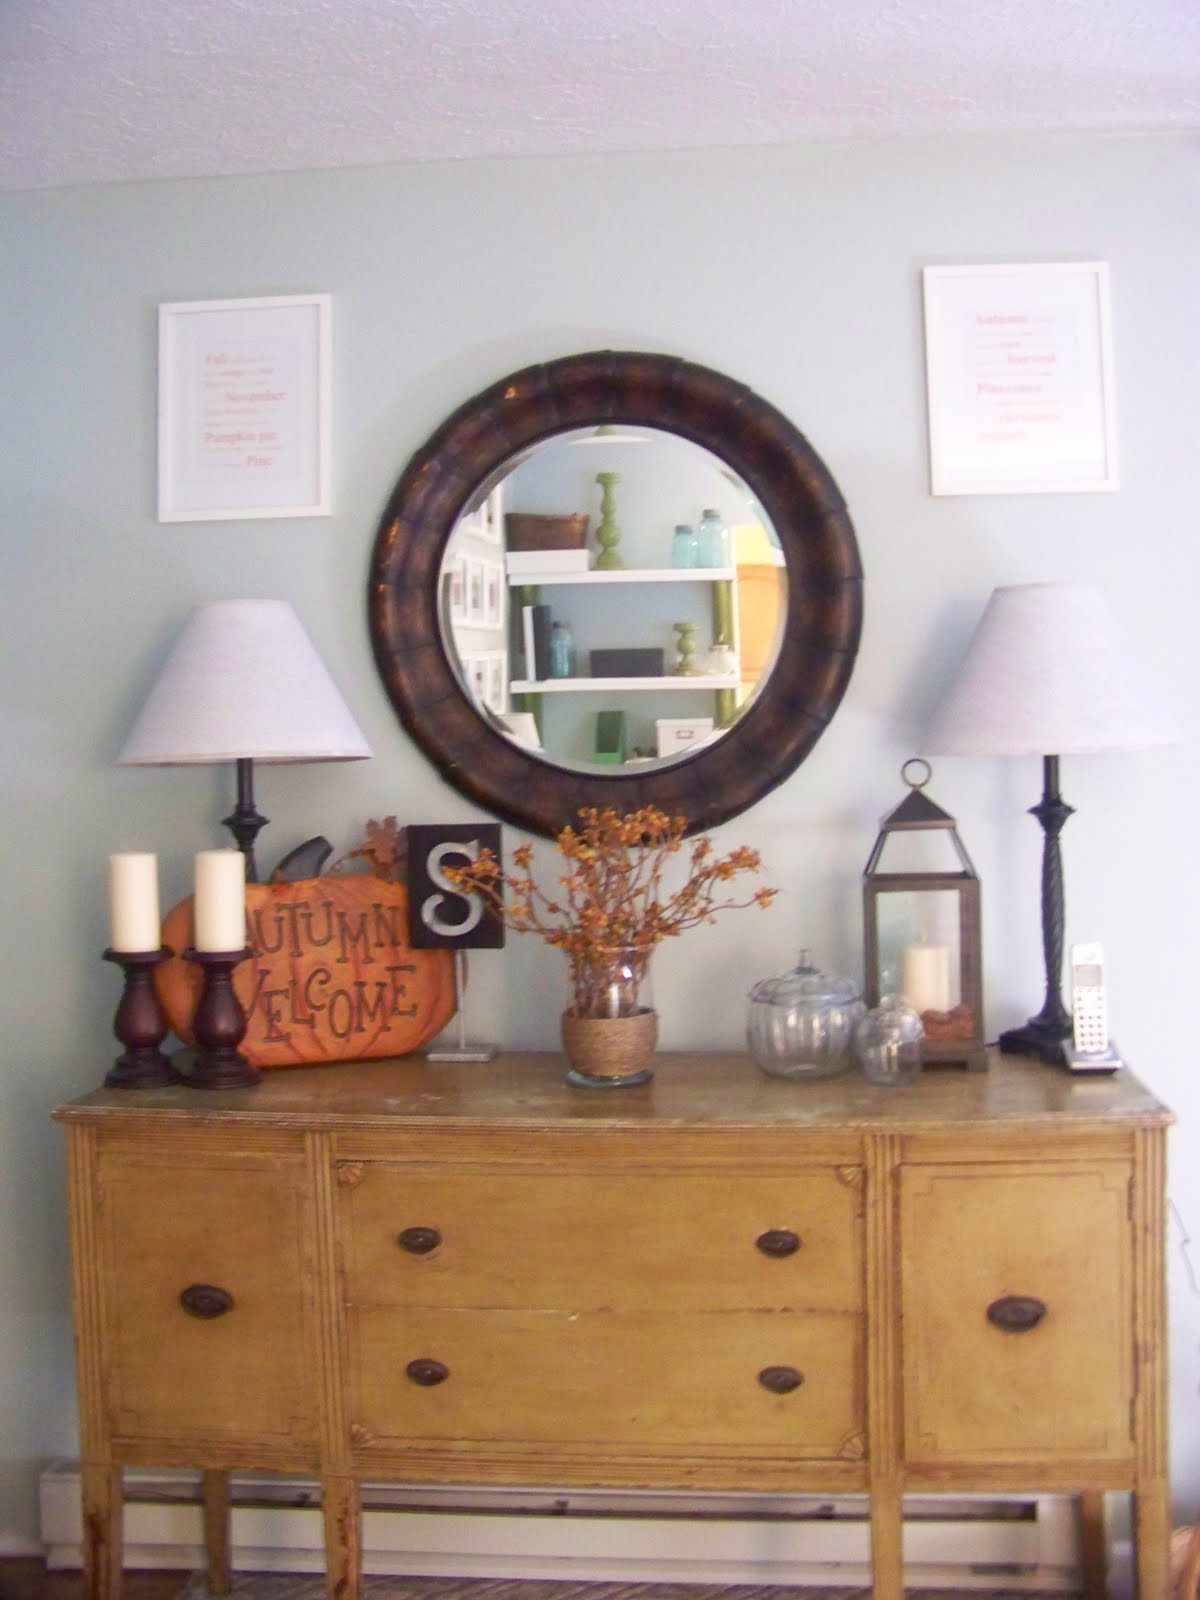 Simply Stoked: Fall Decorating Ideas